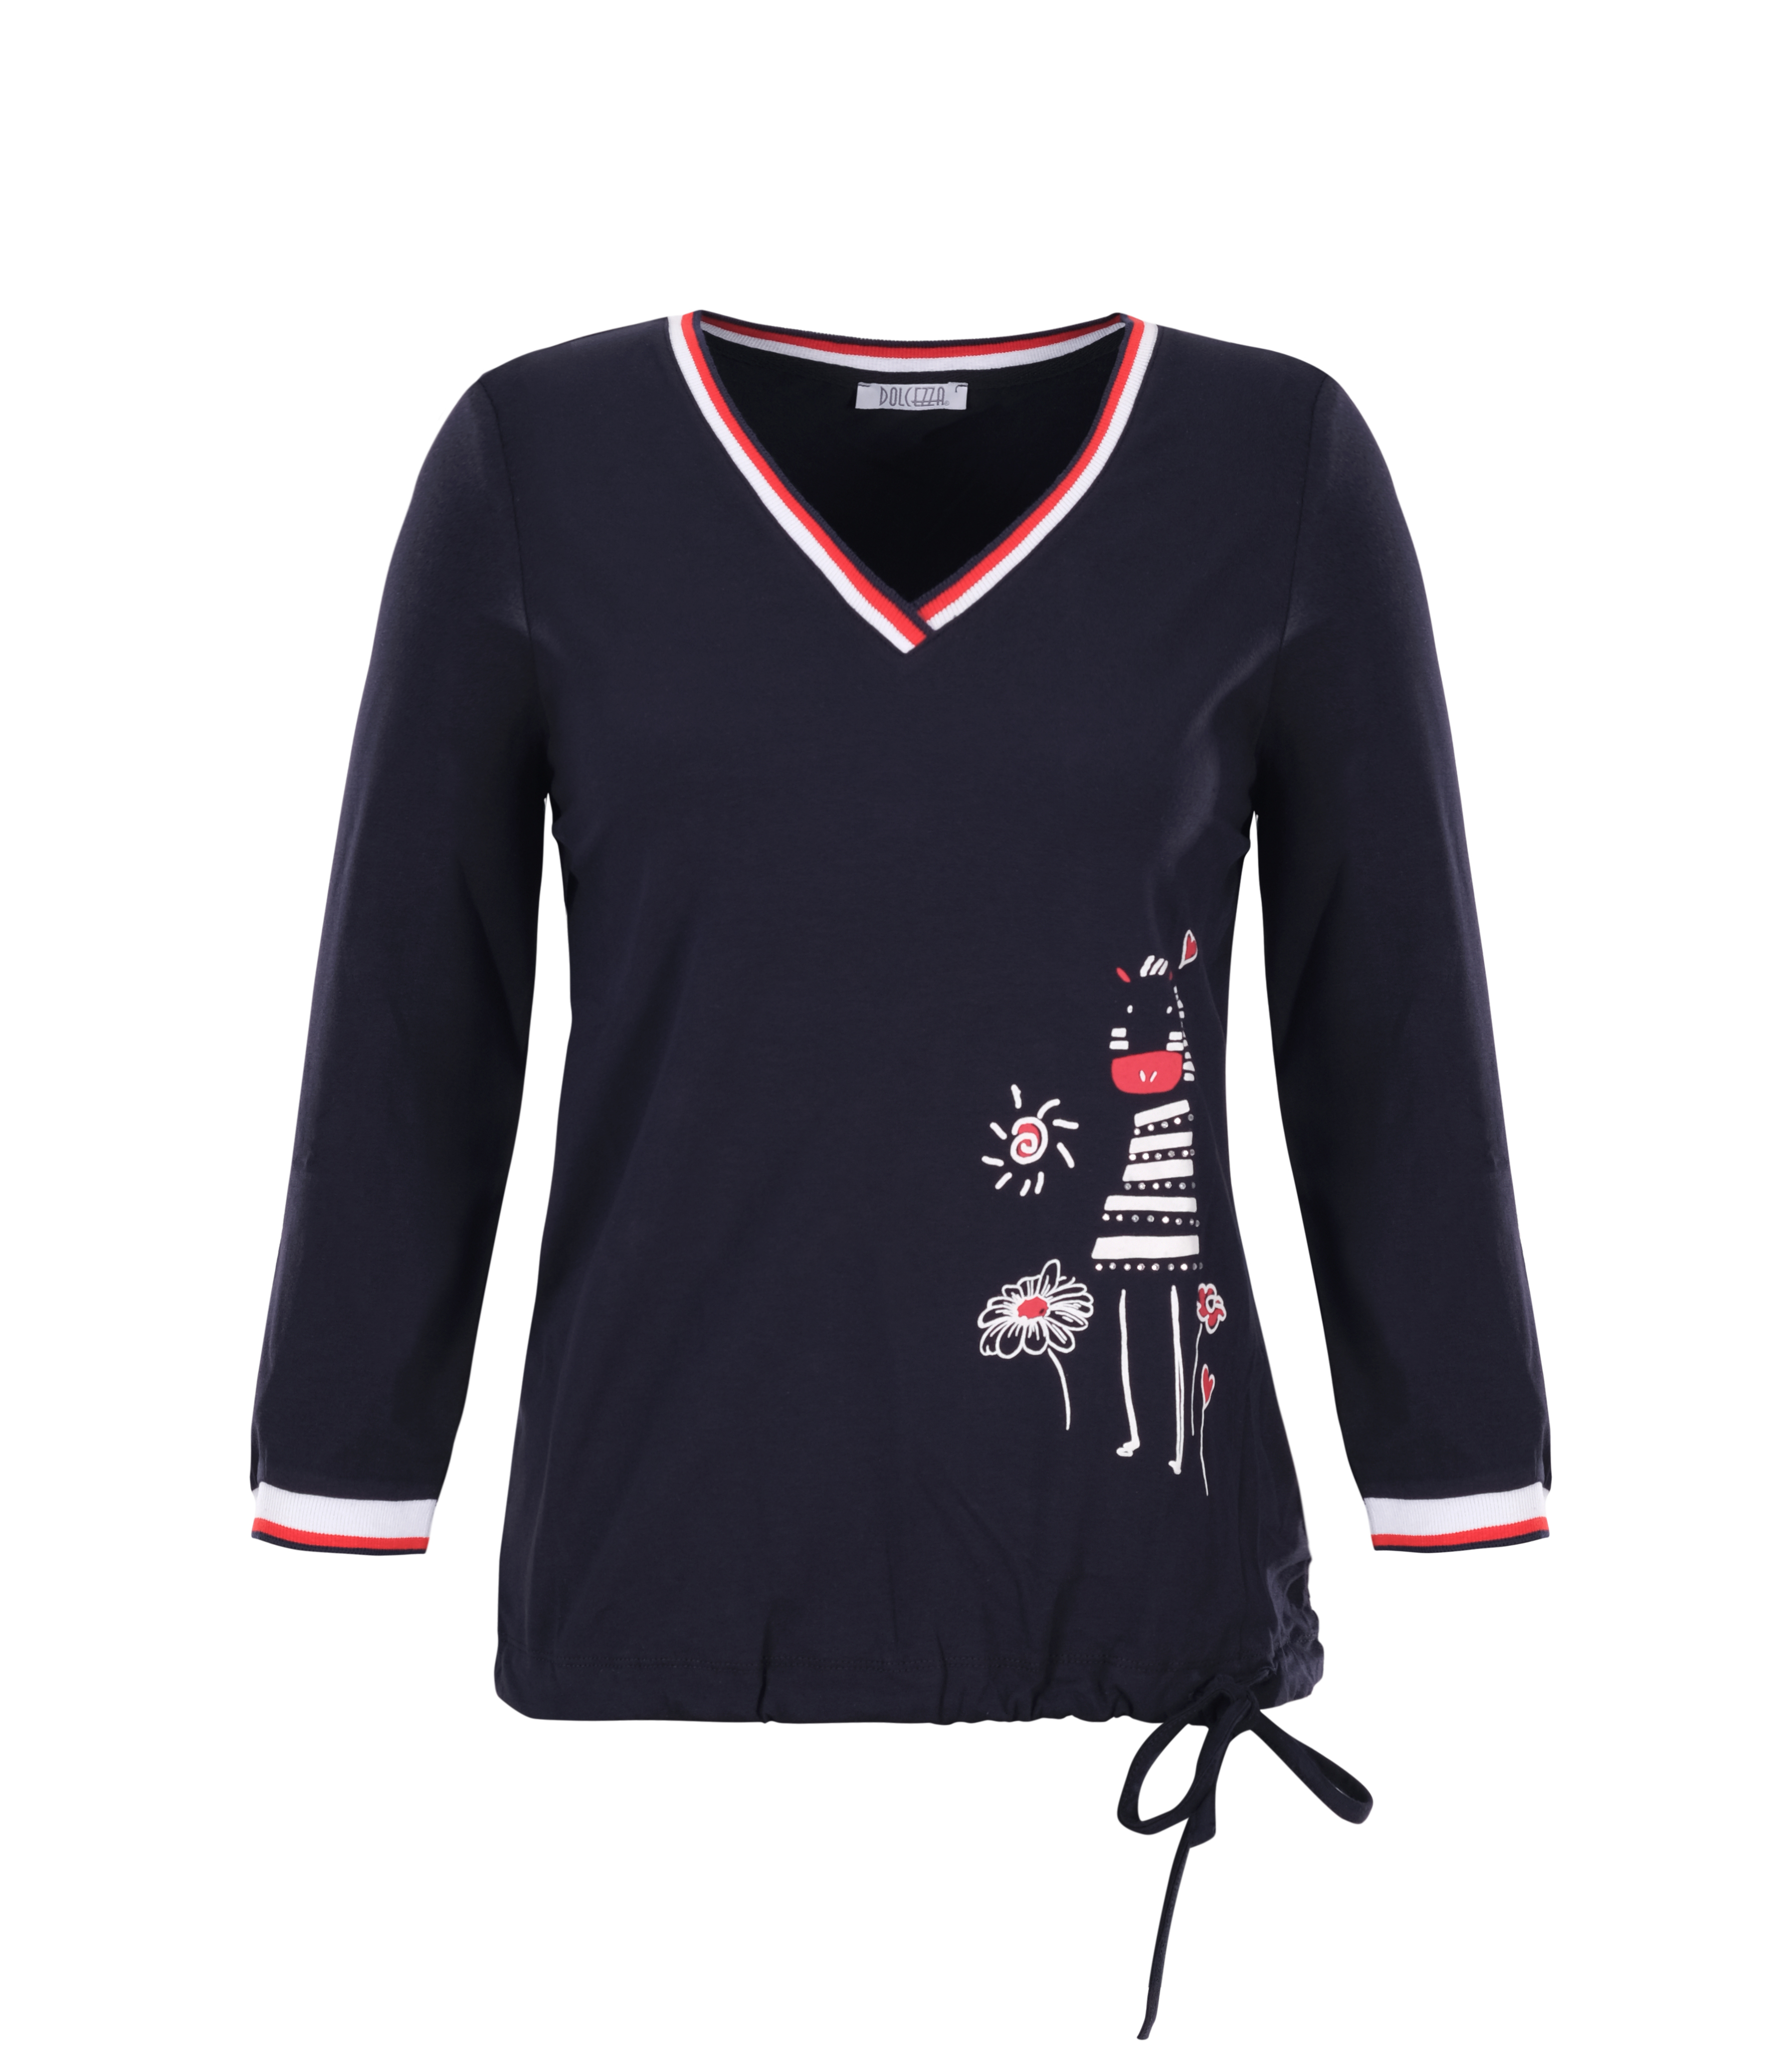 Dolcezza: Humour Me In Navy Tied Hem T-Shirt Dolcezza_21101